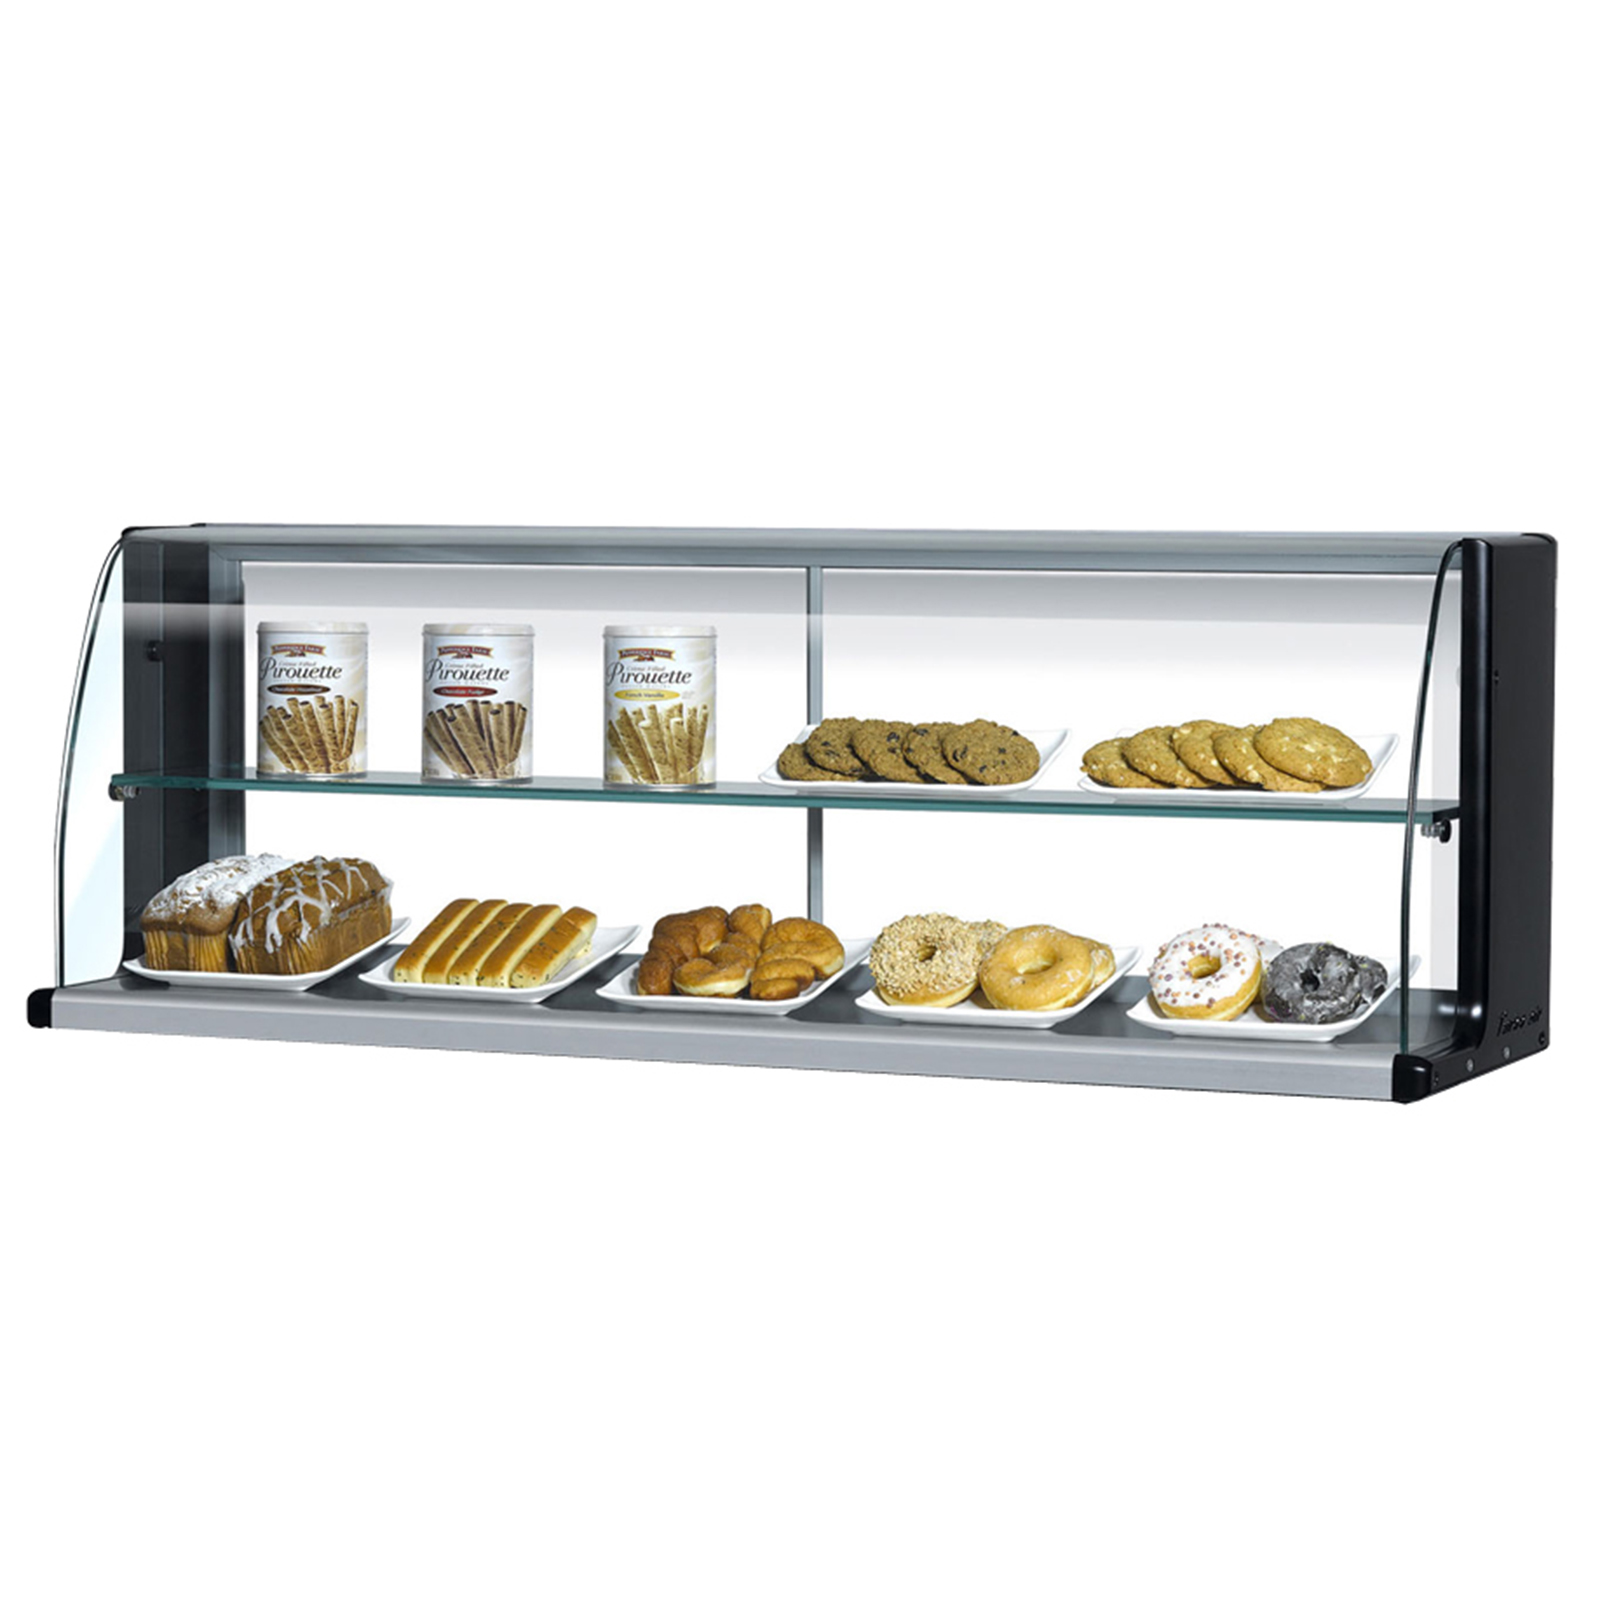 Turbo Air TOMD-30HW display case, non-refrigerated countertop